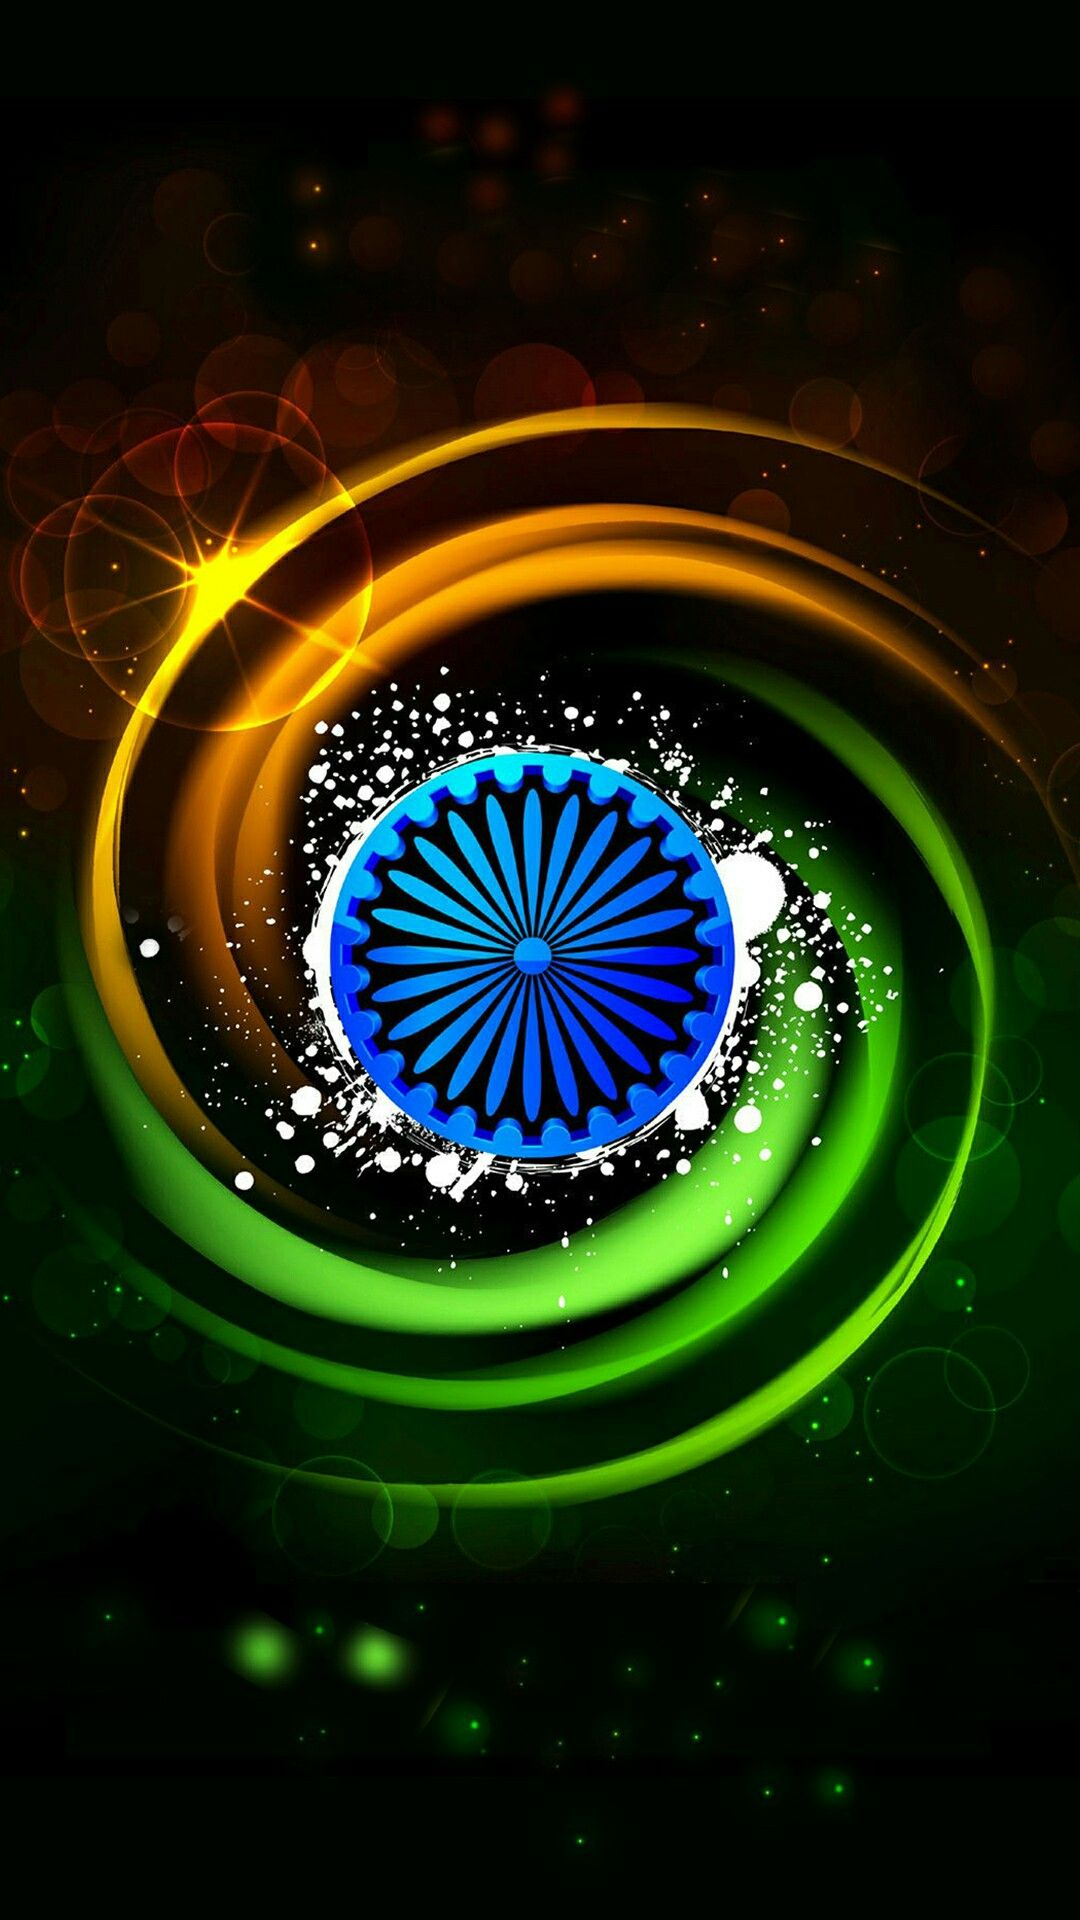 Hd Wallpapers Serba Hitam Versions Share C By Rhendy Hostta Thank You For Visiti Indian Flag Wallpaper Mobile Wallpaper Android Hd Wallpapers For Mobile